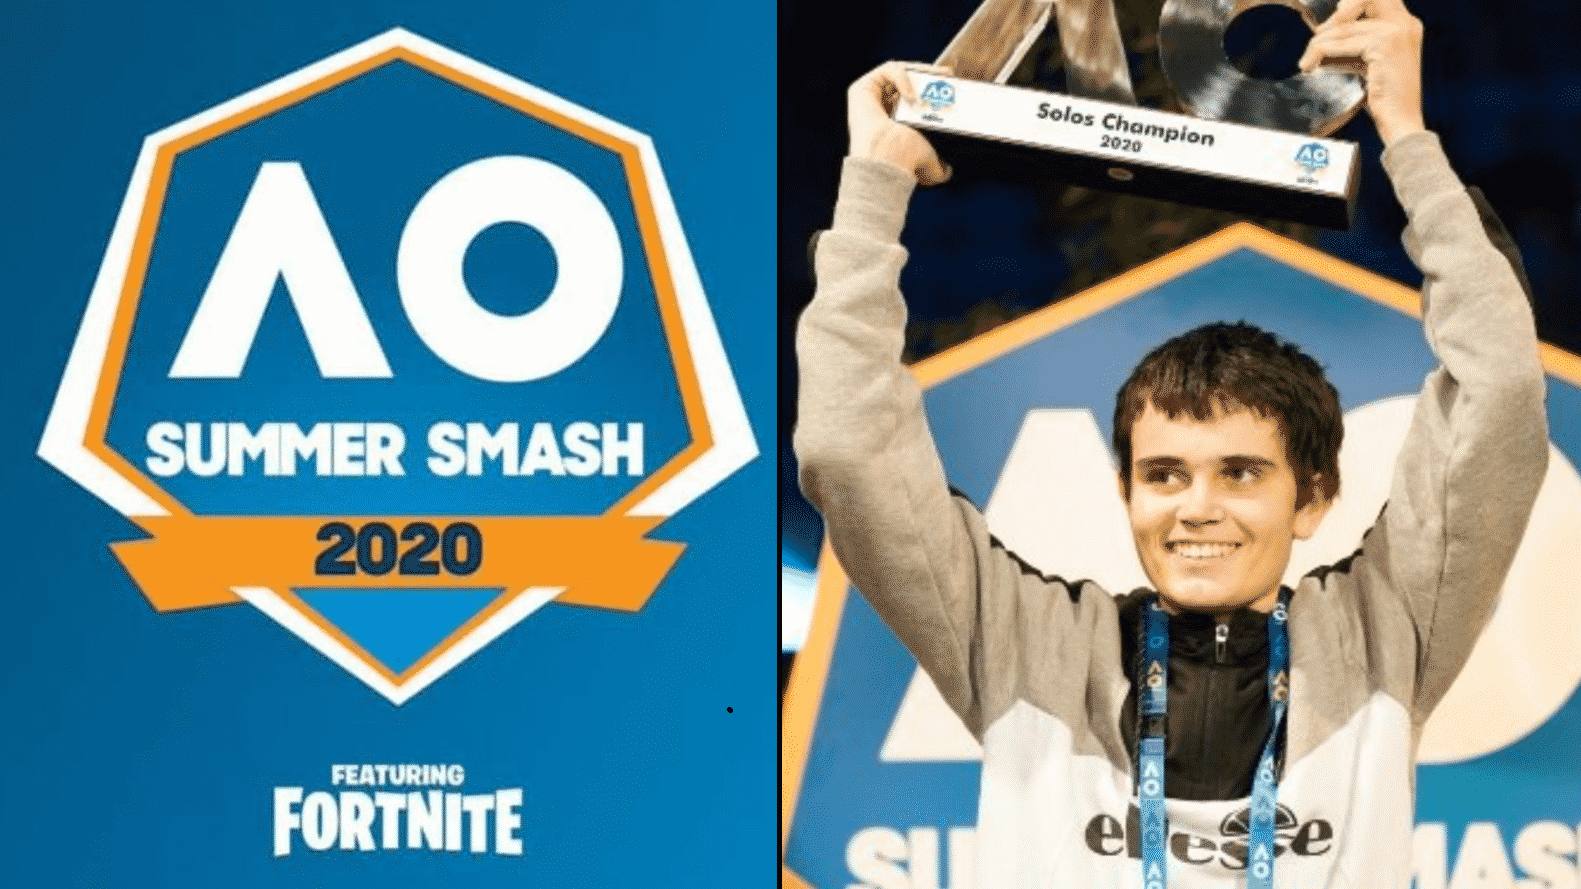 Fortnite controller player wins Australia Open and gets criticized